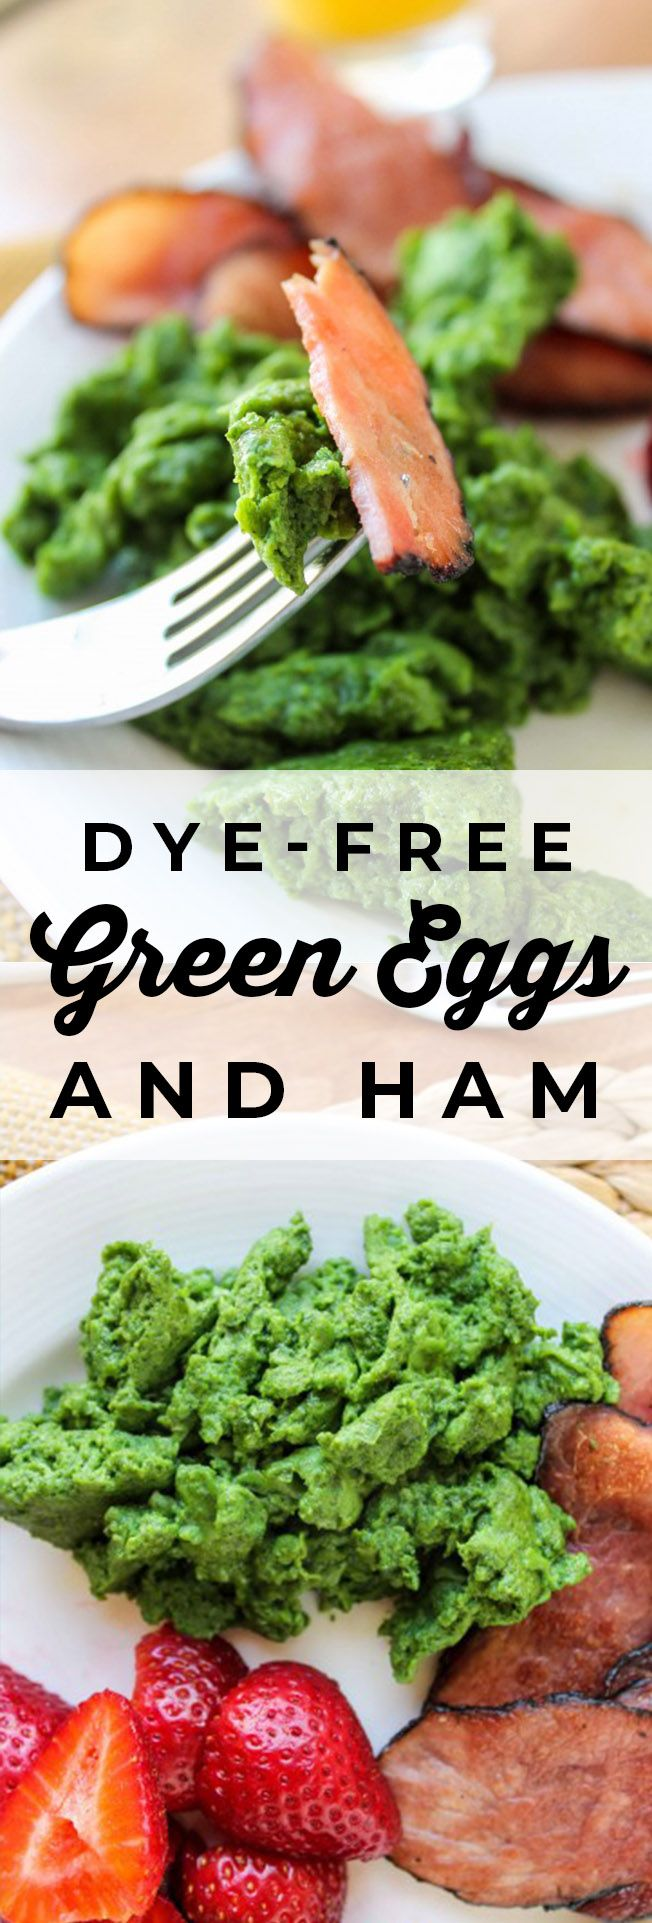 Dye-Free Green Eggs and Ham from The Food Charlatan. Green eggs and ham, just like in the Dr. Seuss book! Instead of dying the eggs with food coloring, we're using spinach to get that bright green color. It tastes delicious and is so fun for the kids! It's perfect for St. Patrick's Day too! #eggs #nodye #green #spinach #ham #breakfast #DrSeuss #stpatricksday #healthy #greeneggsandhamrecipe